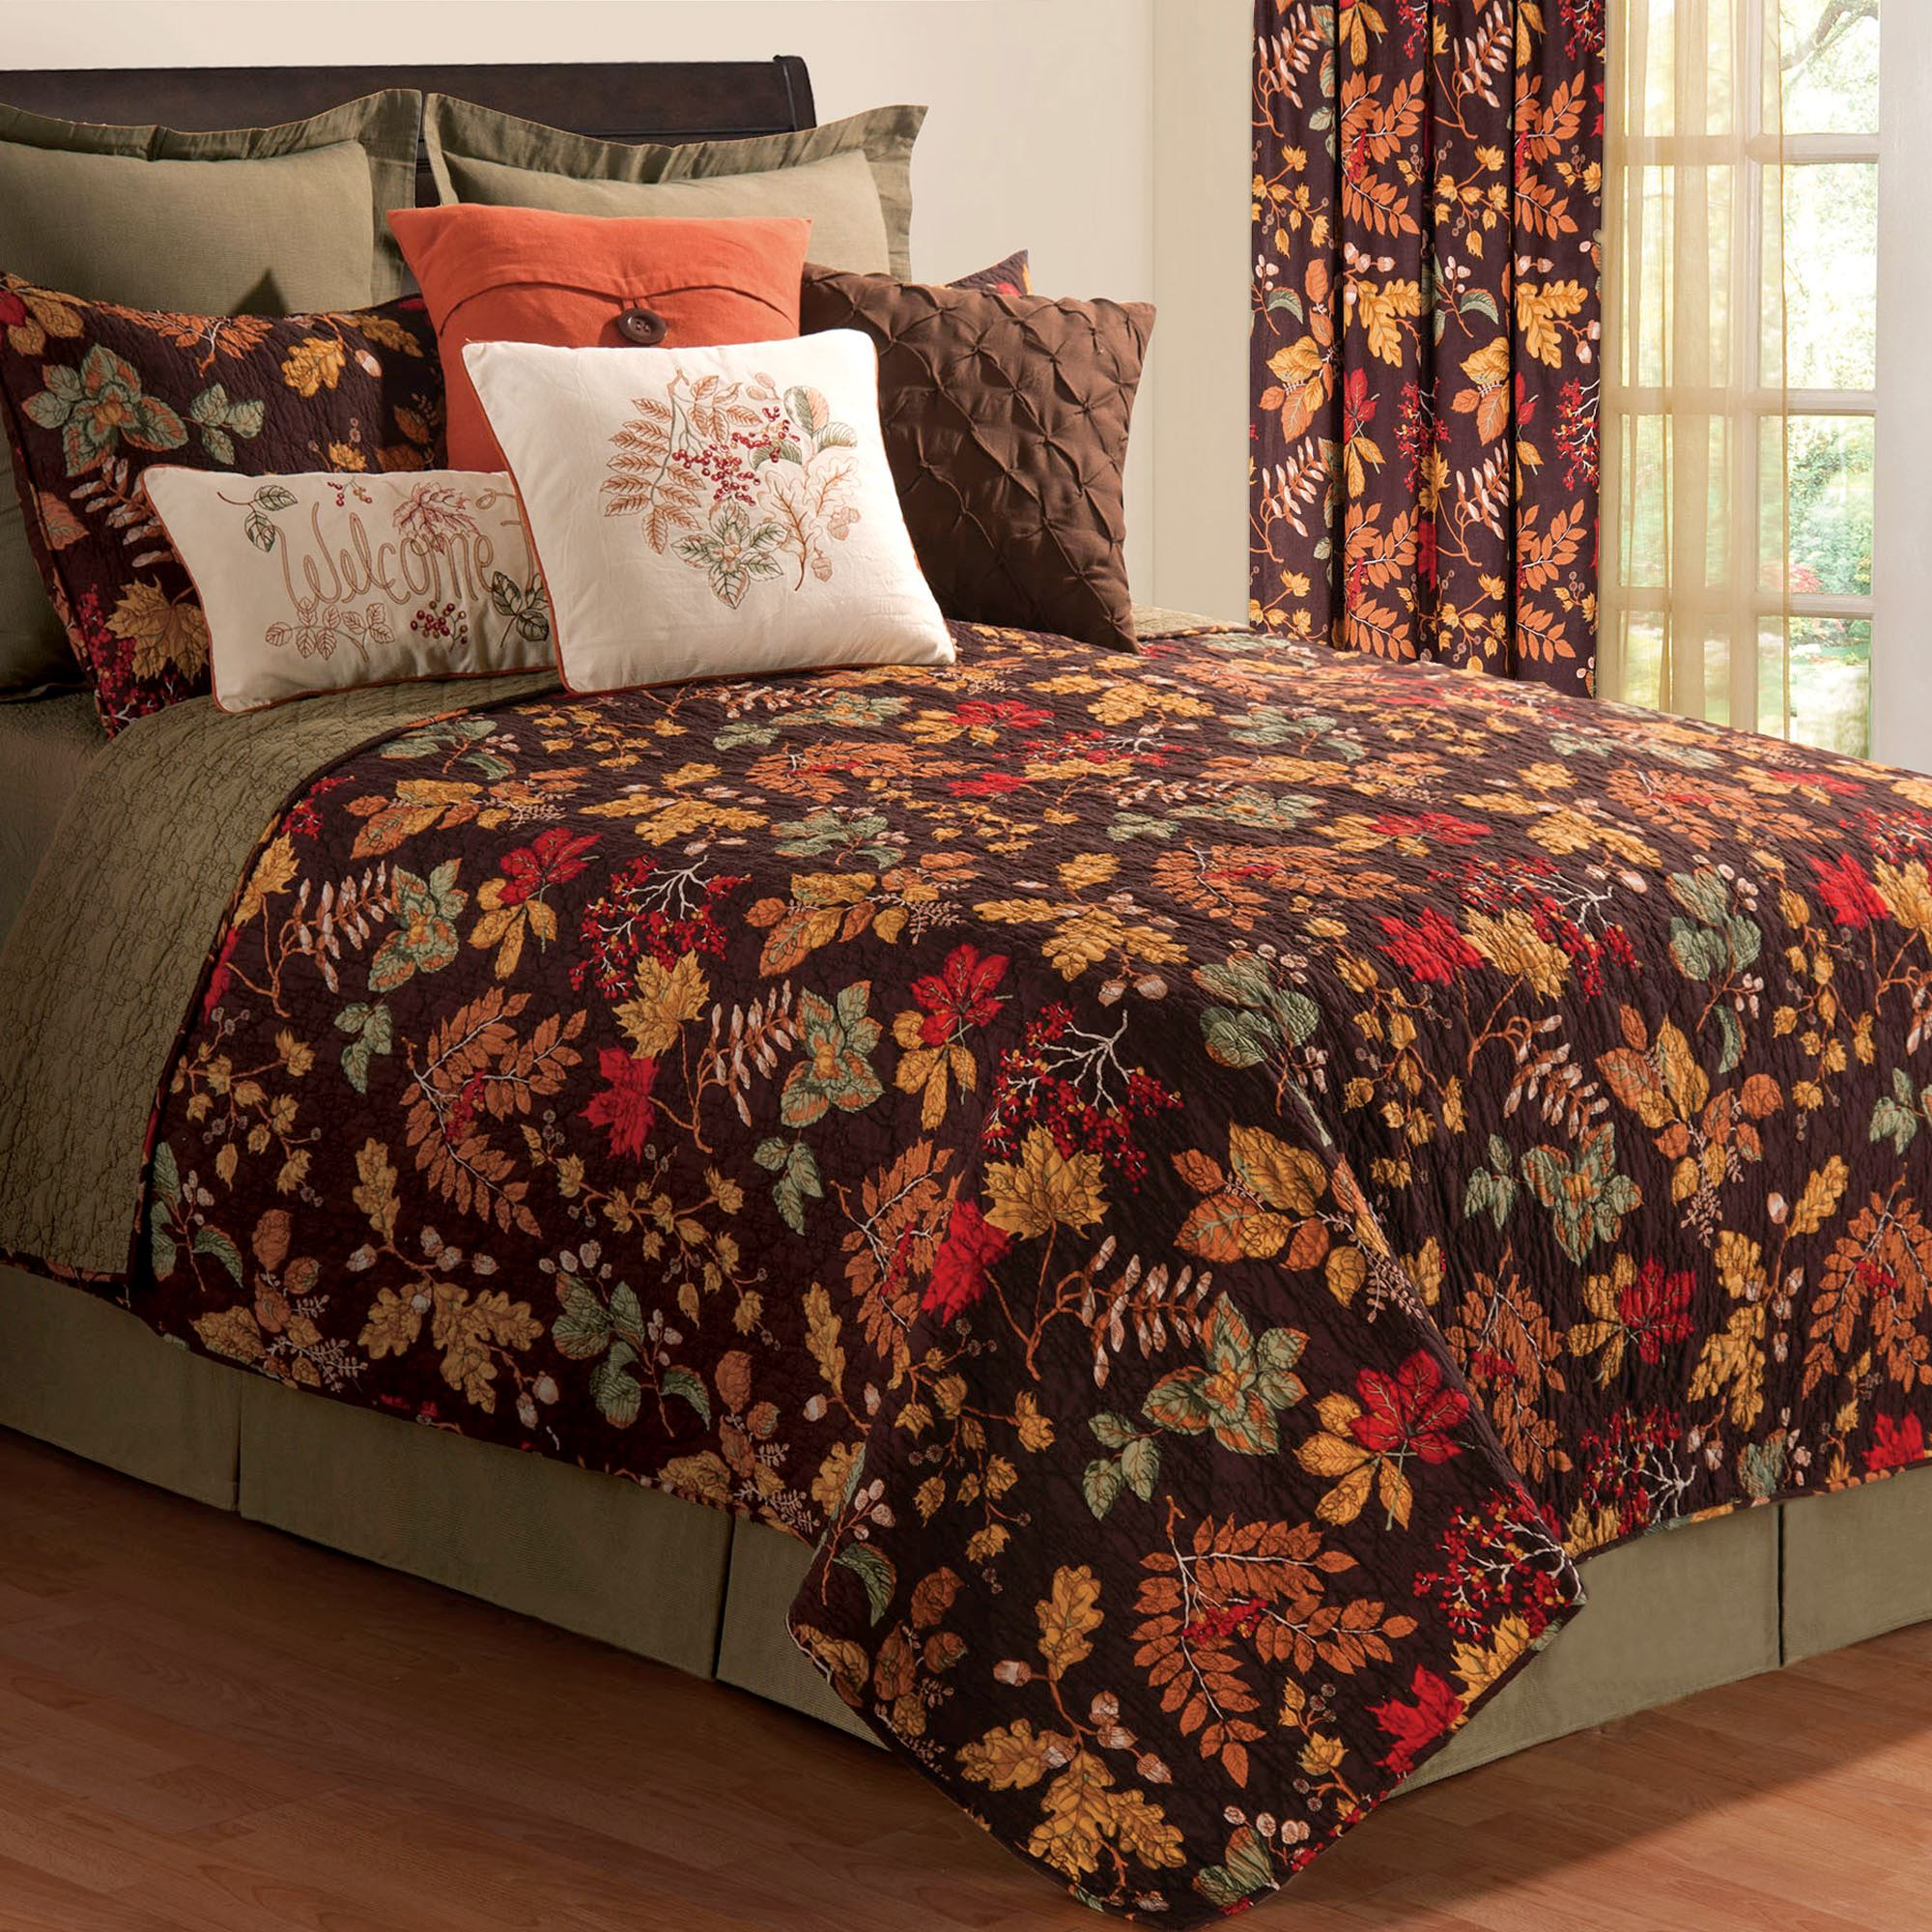 Amison Autumn Leaf Quilt Bedding